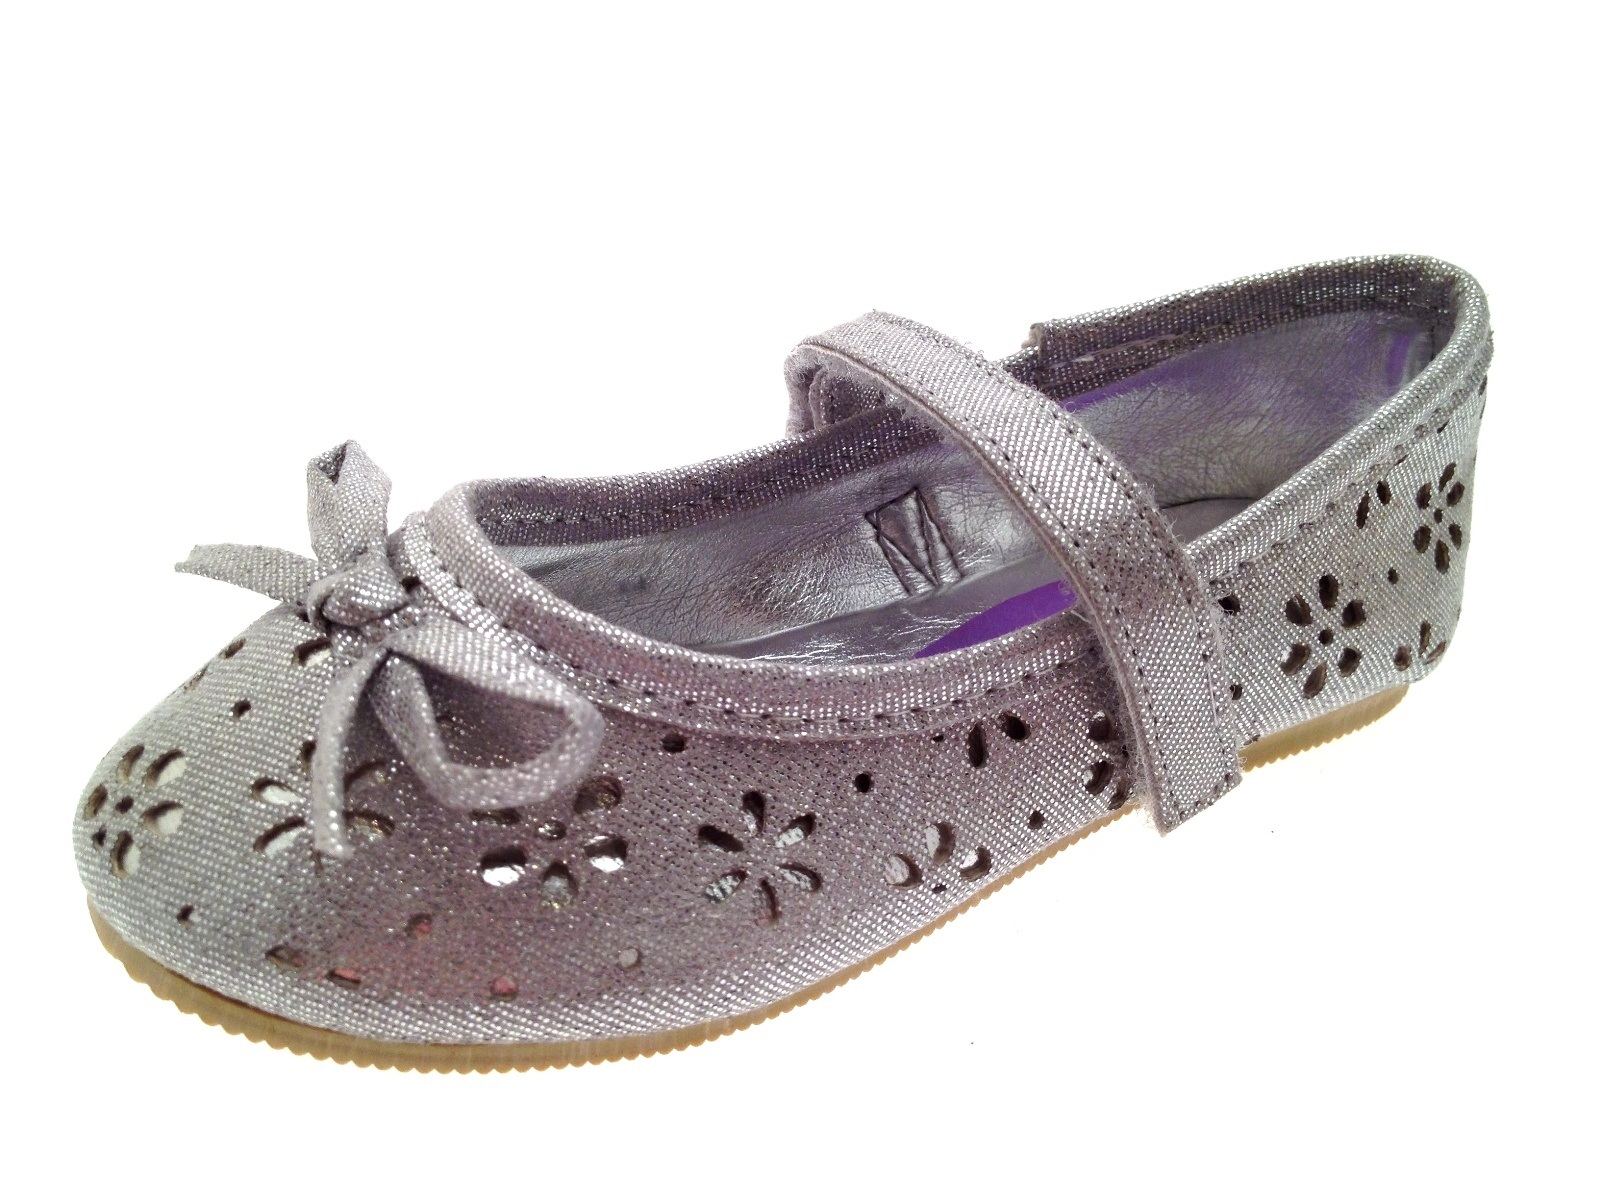 Chicas Brillo Flor Fiesta Zapatos Mary Janes Plana Ballet Bombas Kids Talle Uk 4-12